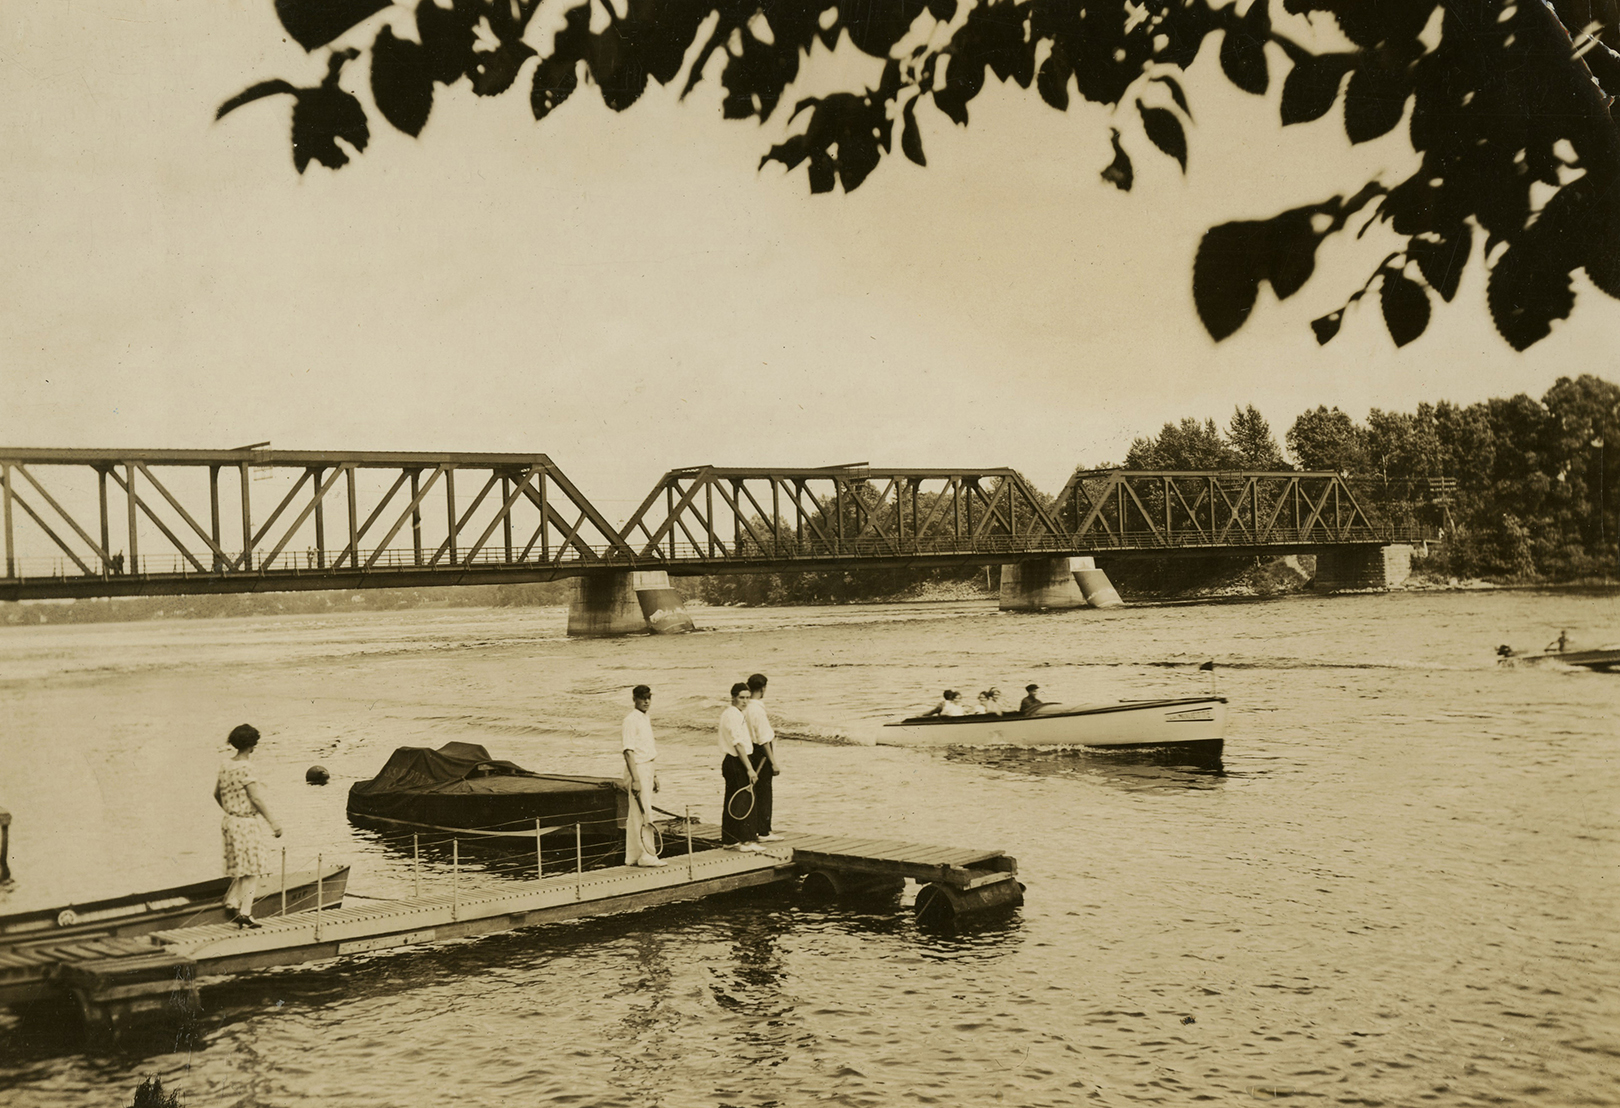 Sepia photograph of people standing on a dock looking at motorboats on the river. In the background, a train bridge spans the river.